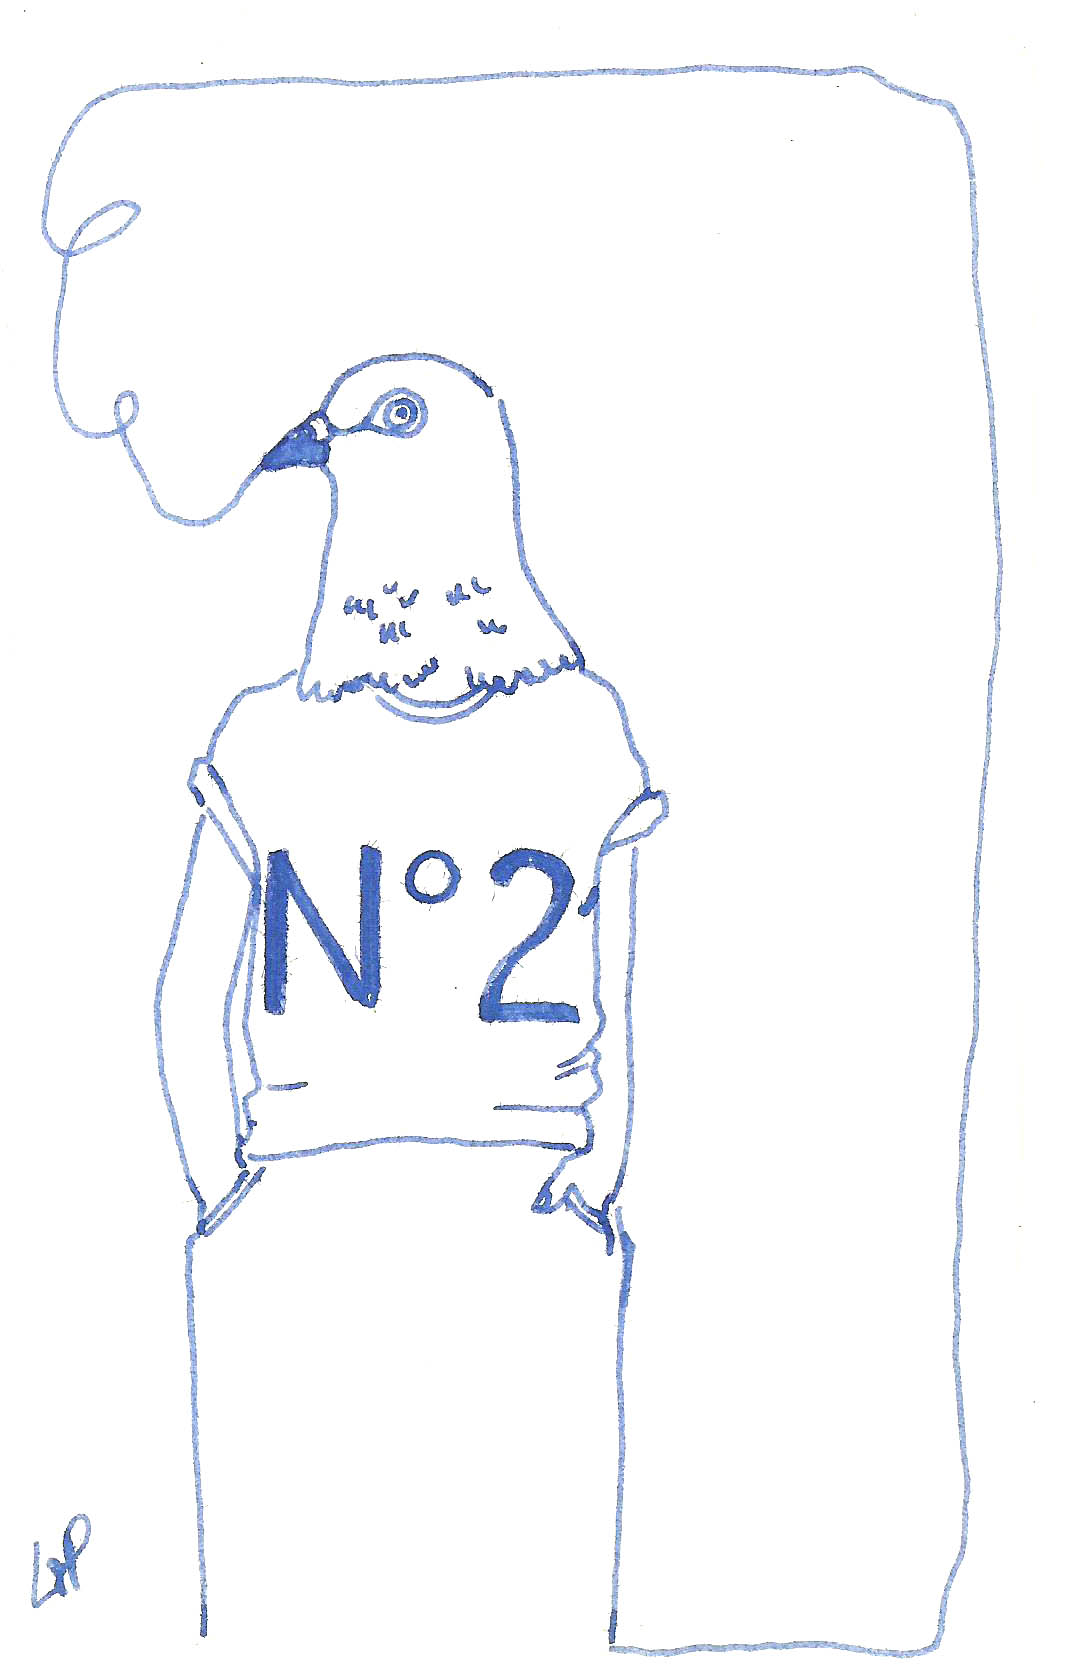 piceon in n.21